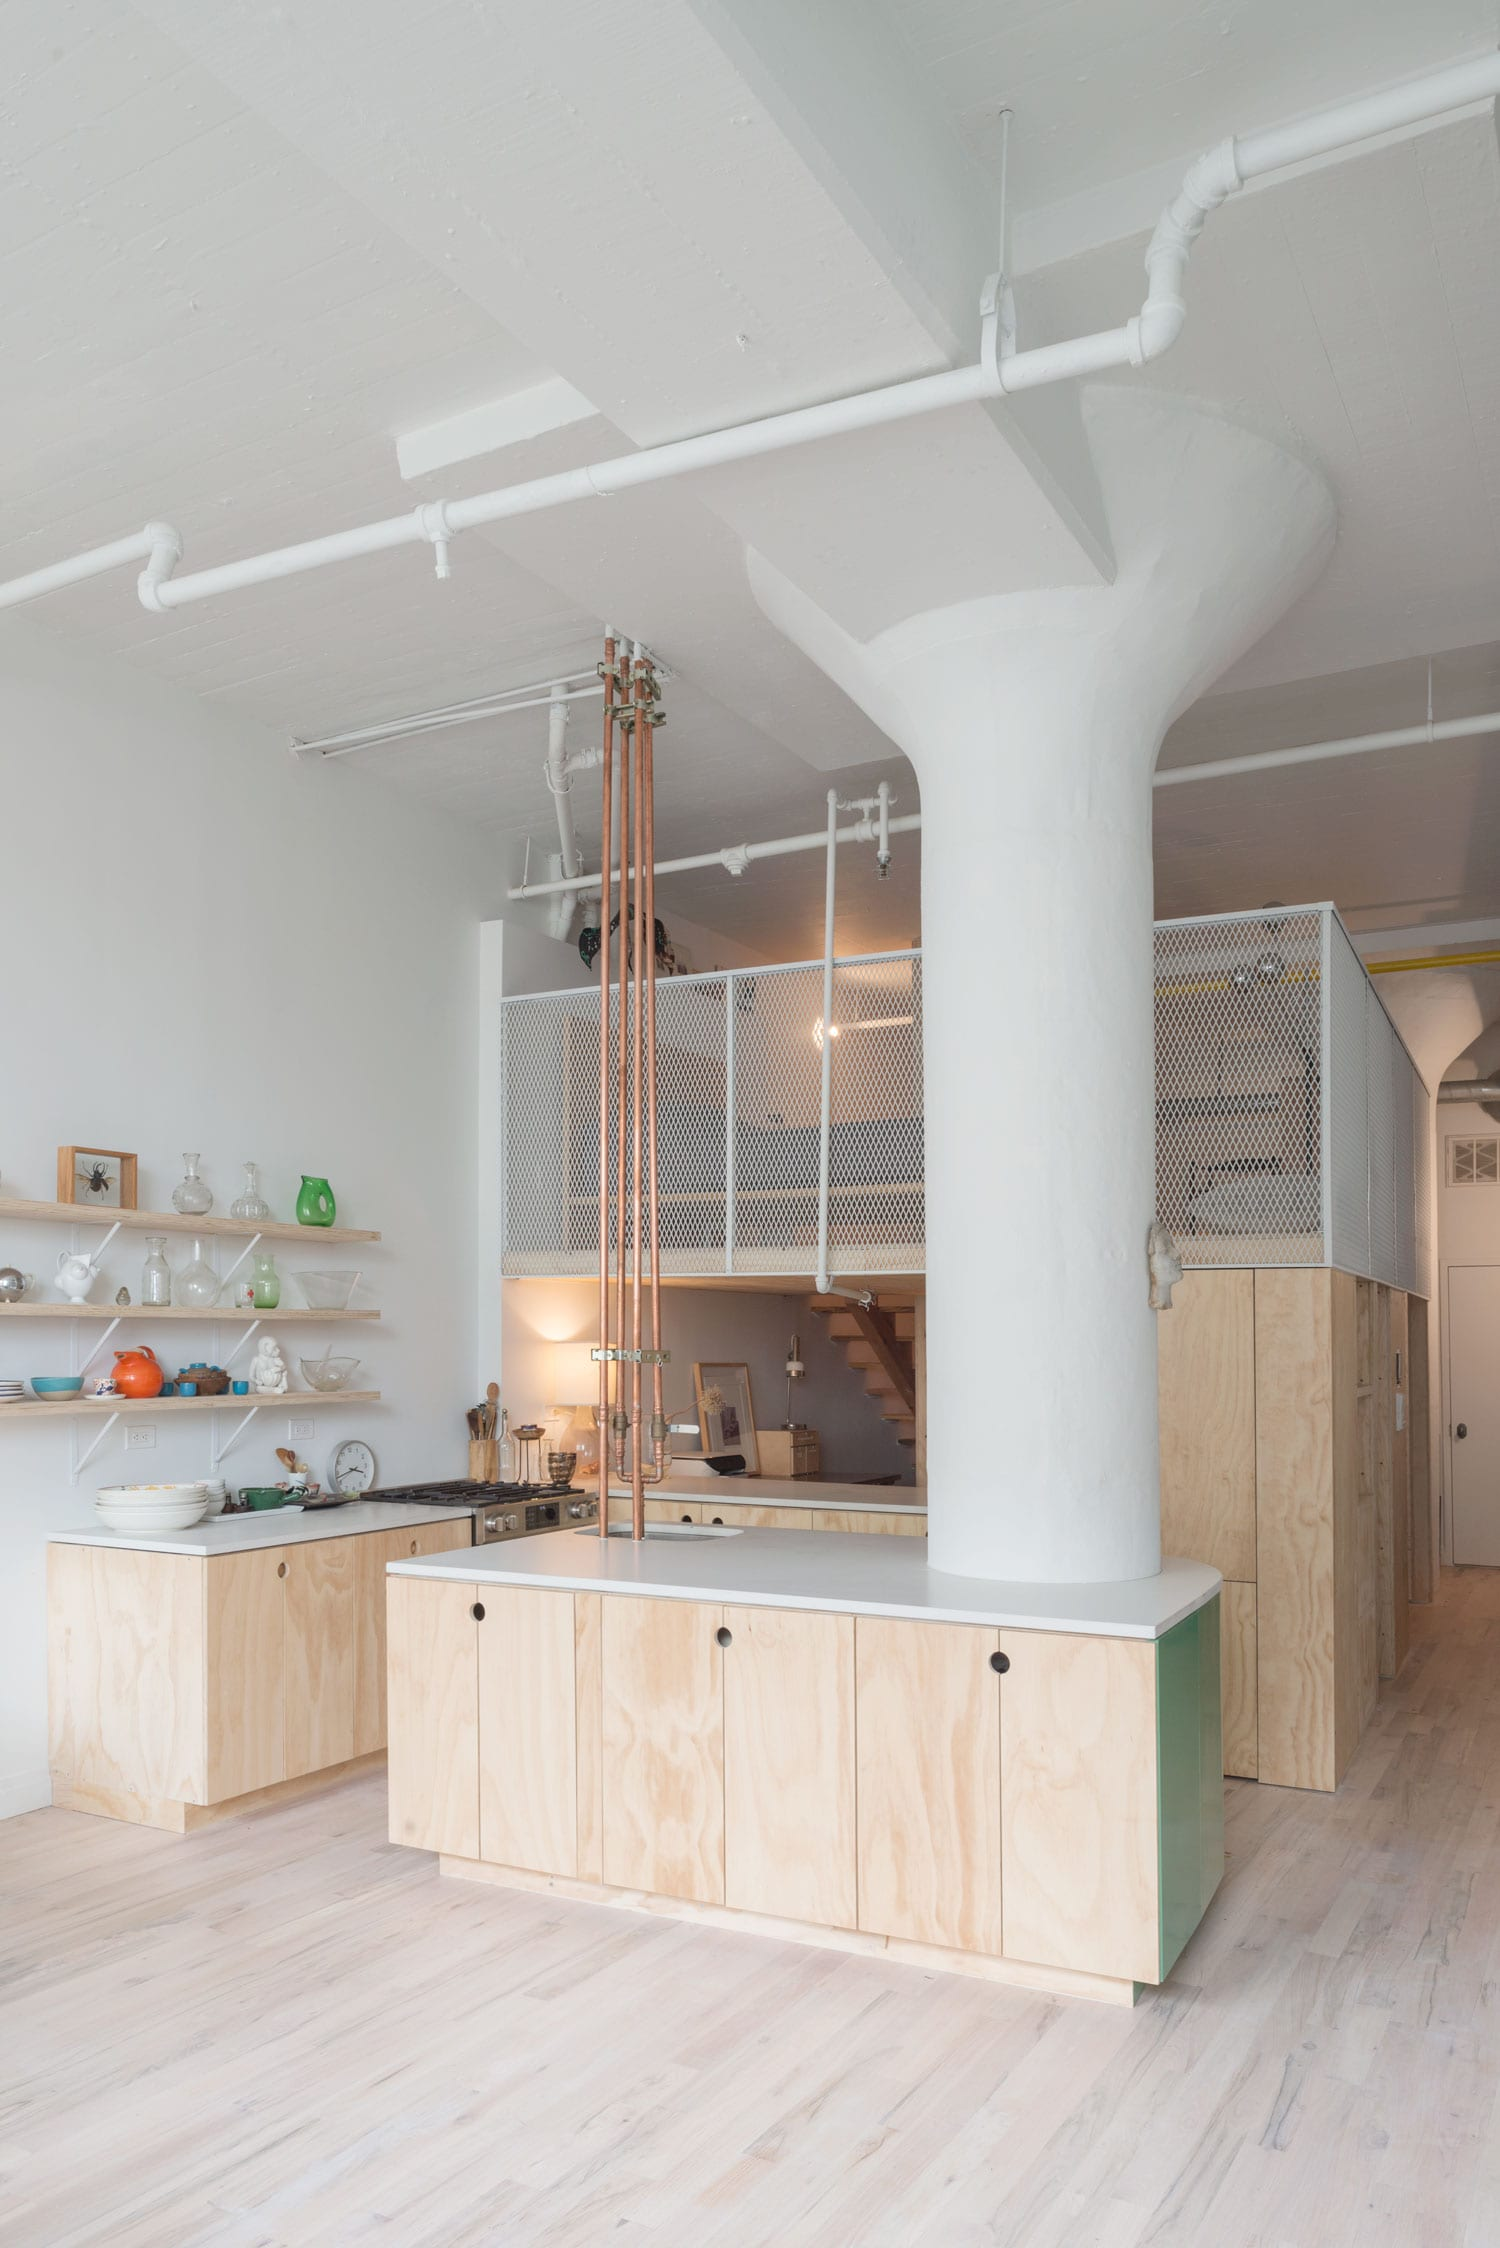 Bed Stuy Loft In Brooklyn New York By New Affiliates